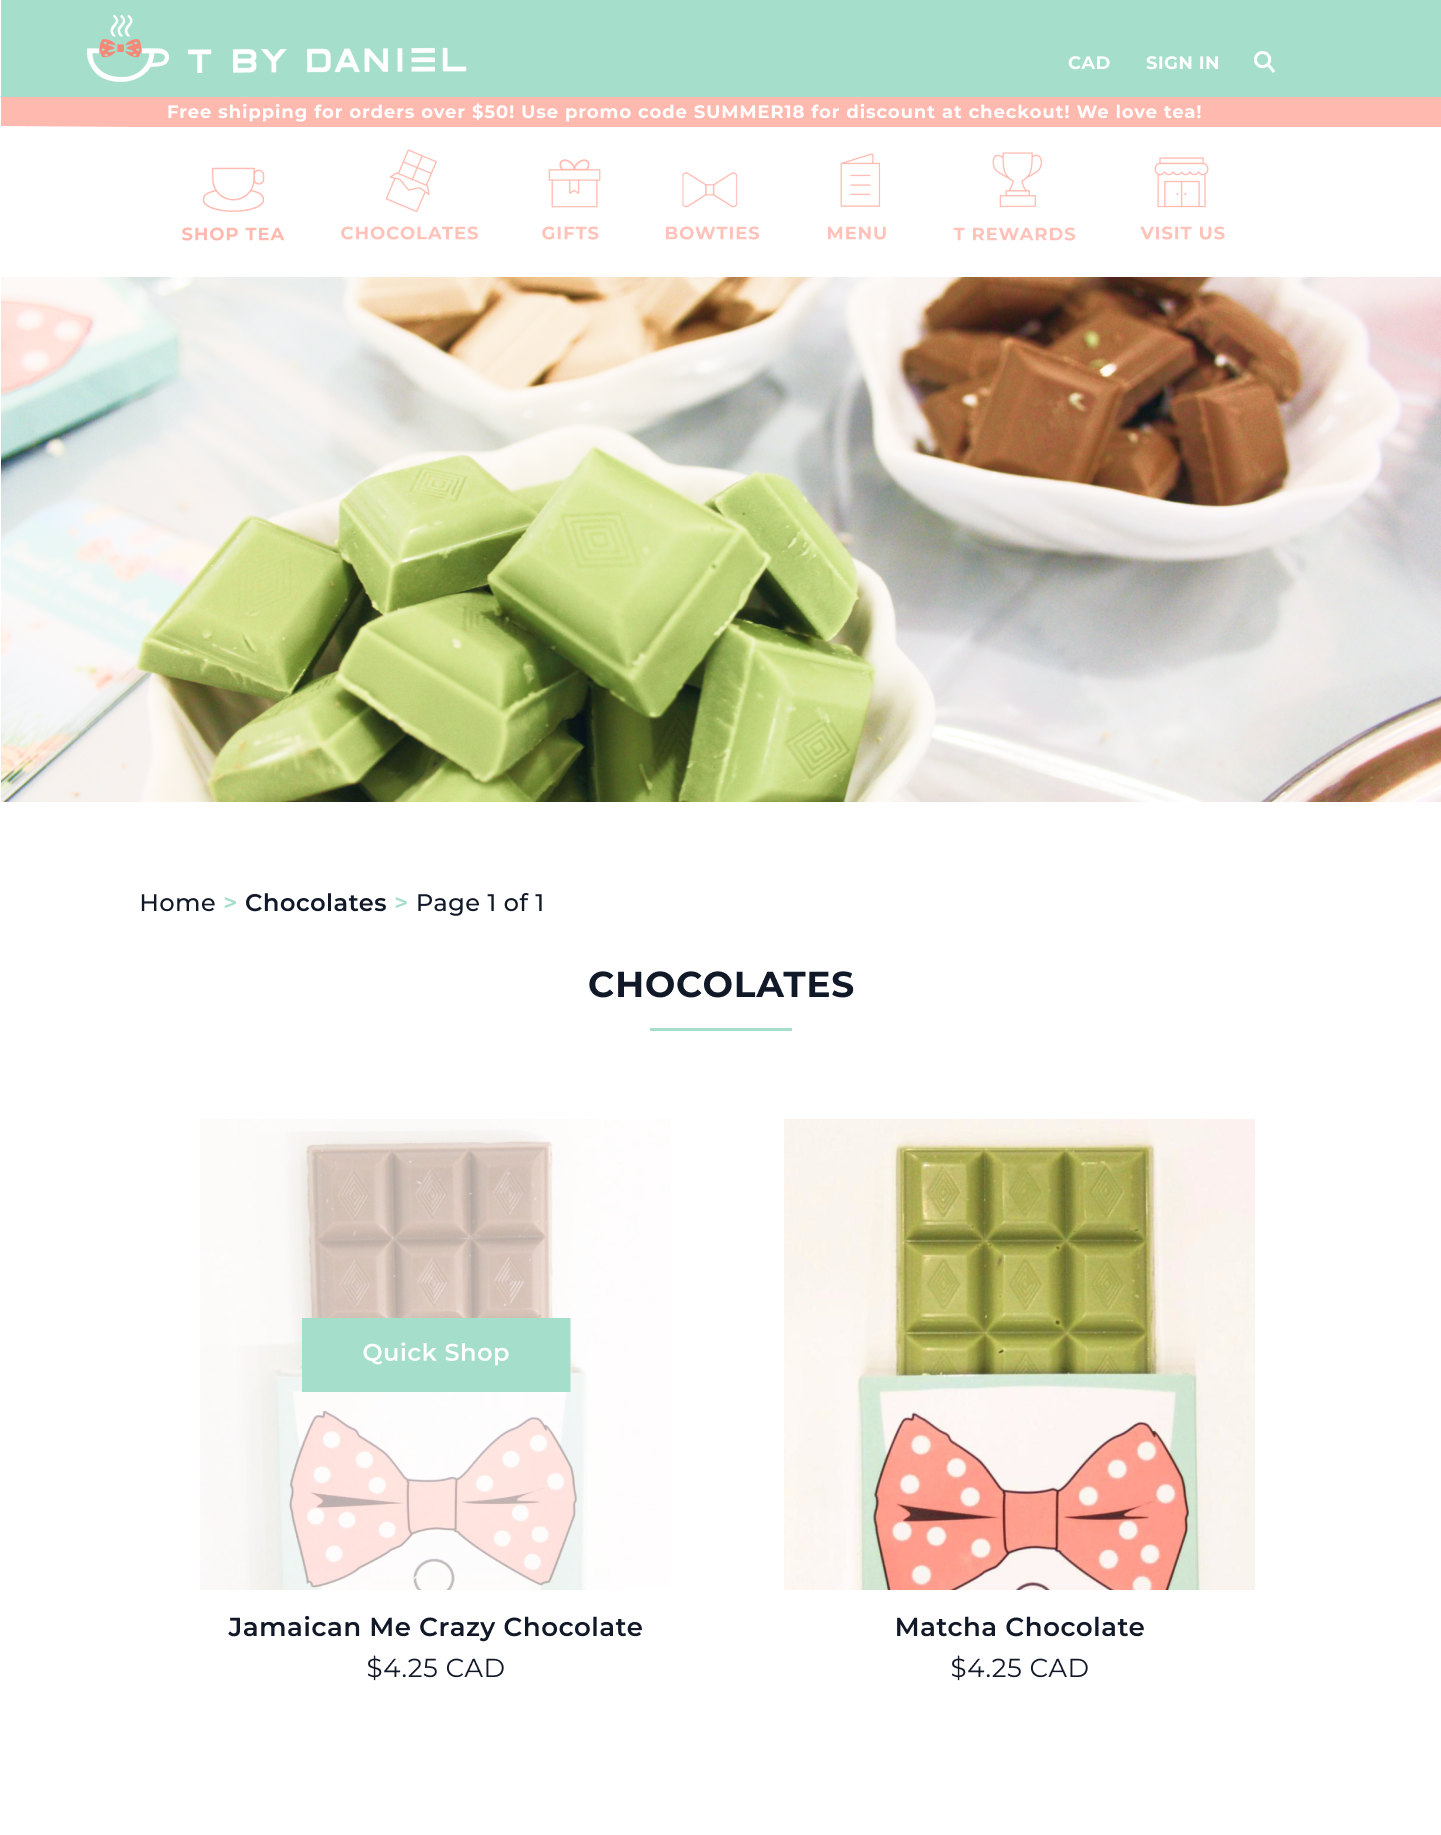 Separate page for tea-flavoured chocolates allow online customers to purchase them from the comfort of their own home.